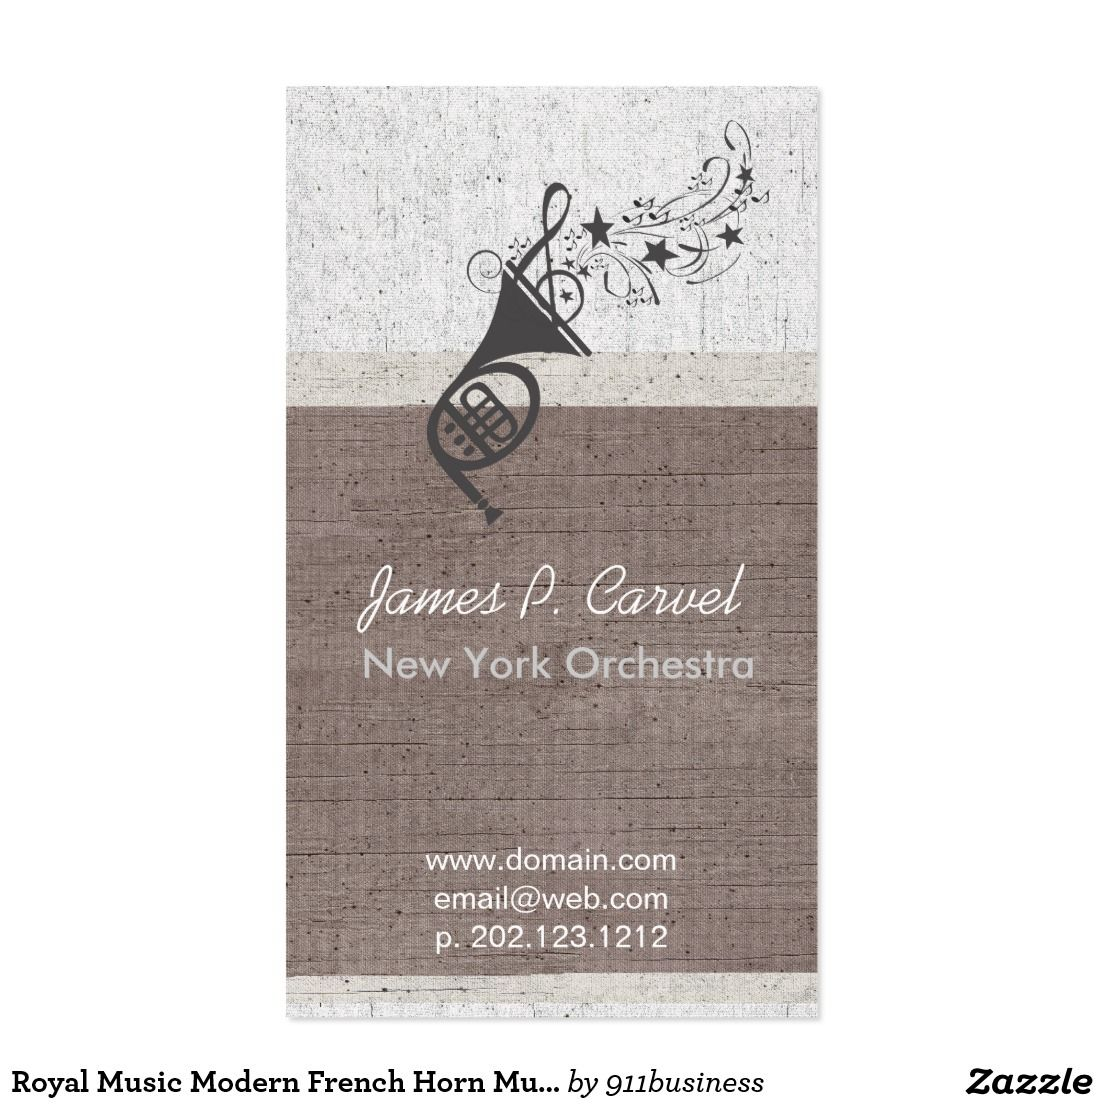 Royal music modern french horn music band teacher business card french horn business card for band a french horn music logo on a aged linen baclground great for band members and for music teachers colourmoves